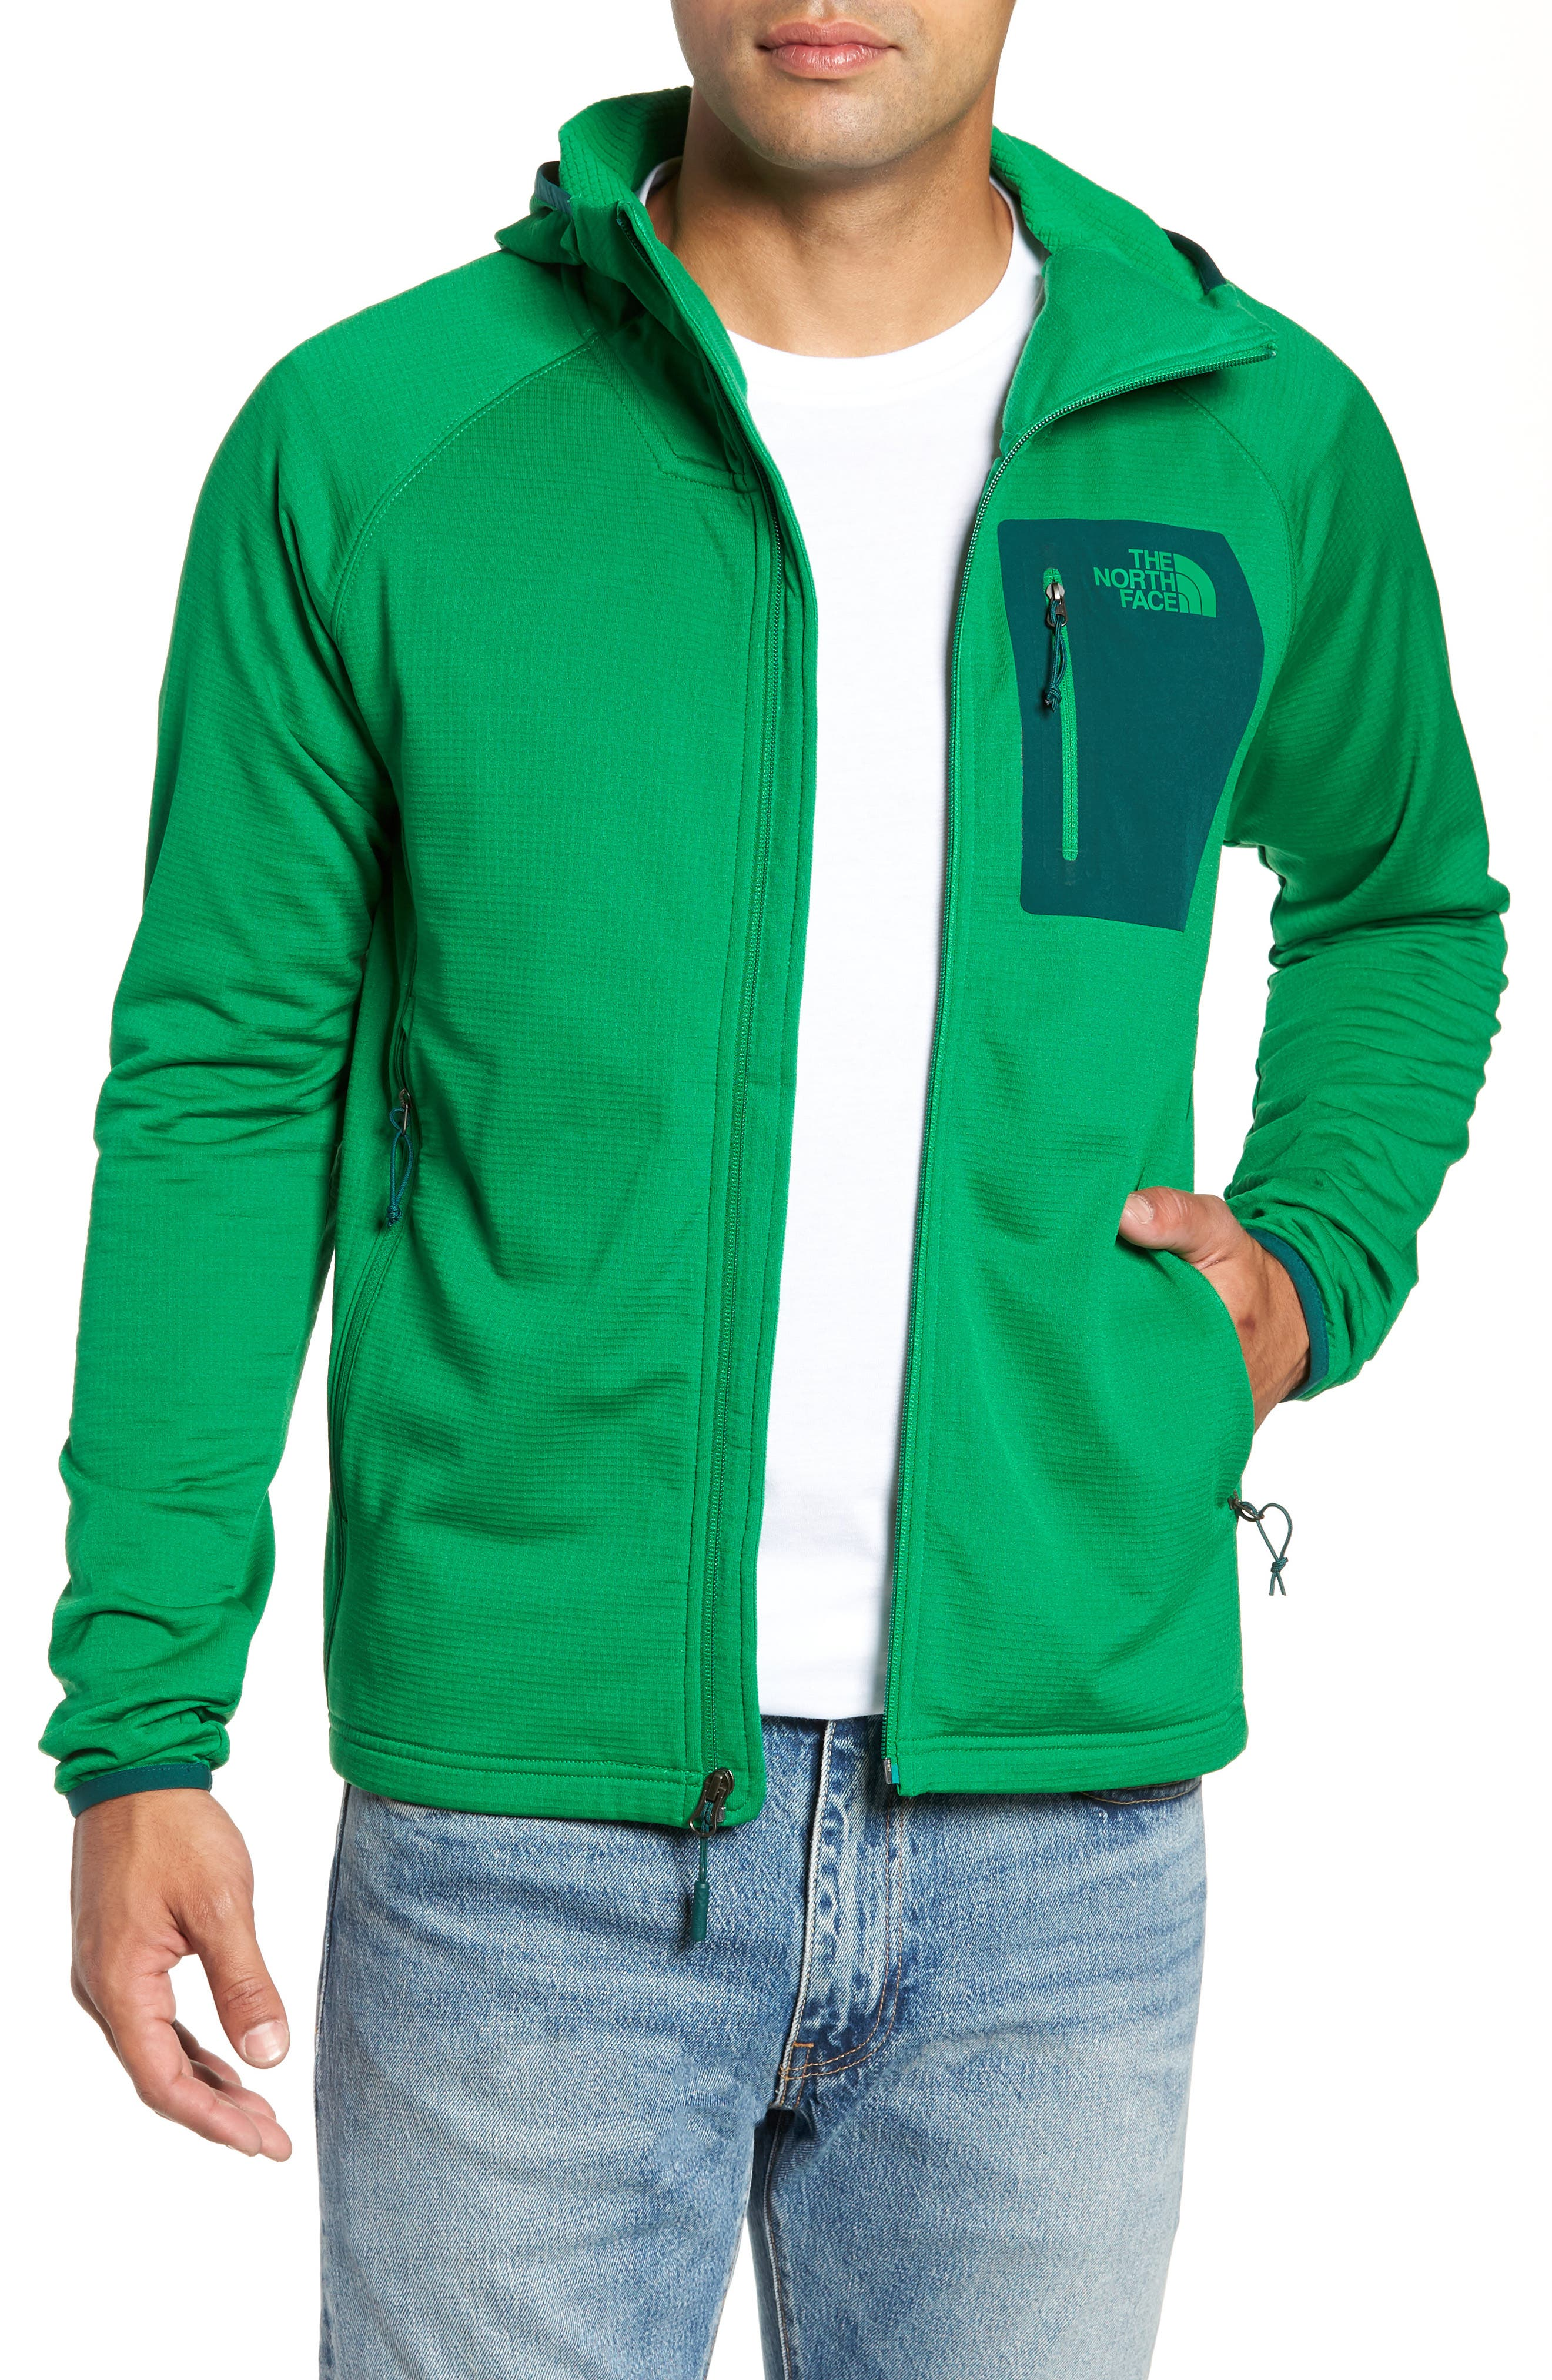 THE NORTH FACE, Borod Zip Fleece Jacket, Main thumbnail 1, color, 301